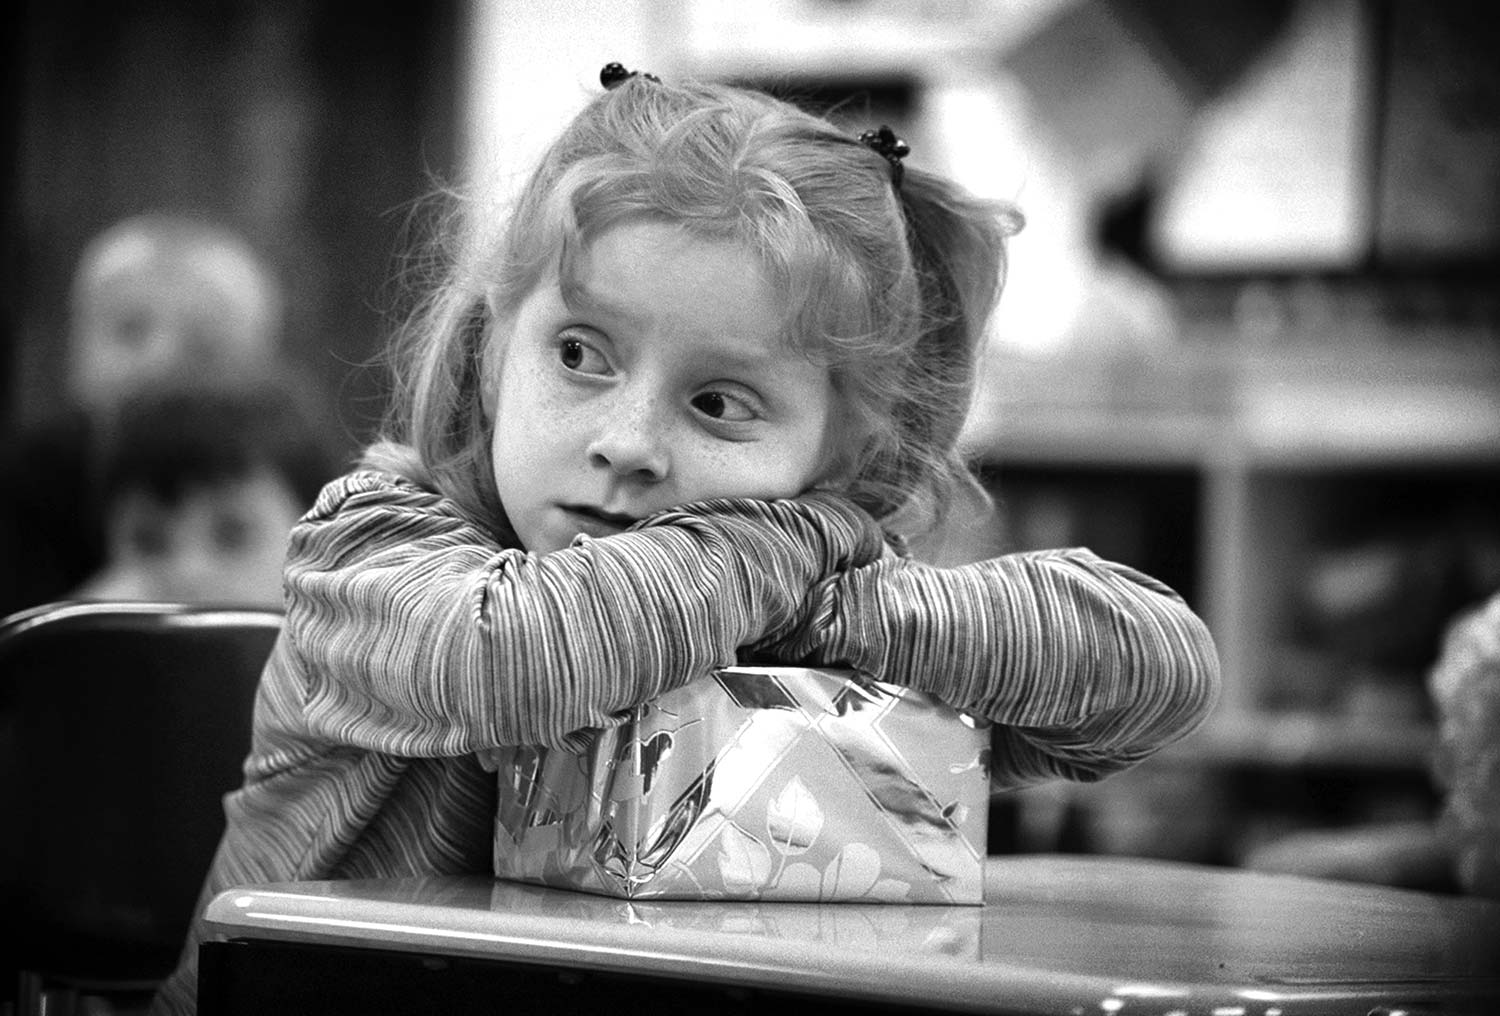 First grader, Meghan Brumitte, looks on expectantly as she waits to see if her classmate's egg protection box was a success. Photo by Jessica White - 2003